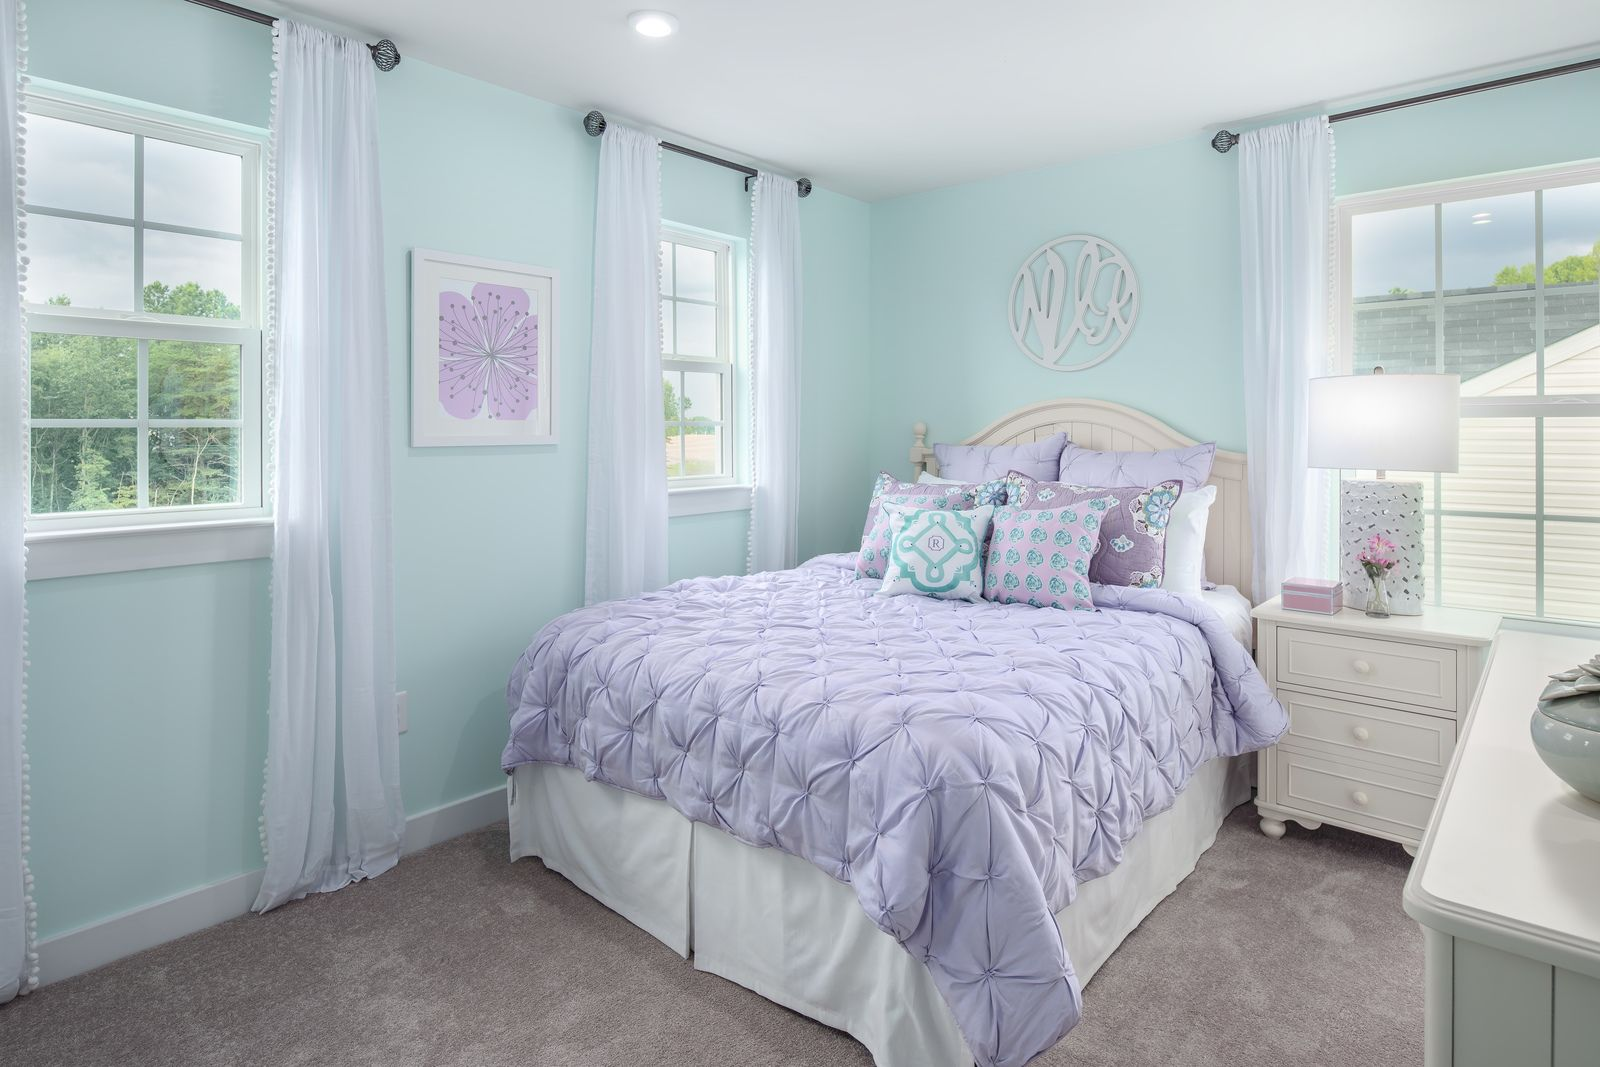 Bedroom featured in the Ballenger By Ryan Homes in Pittsburgh, PA